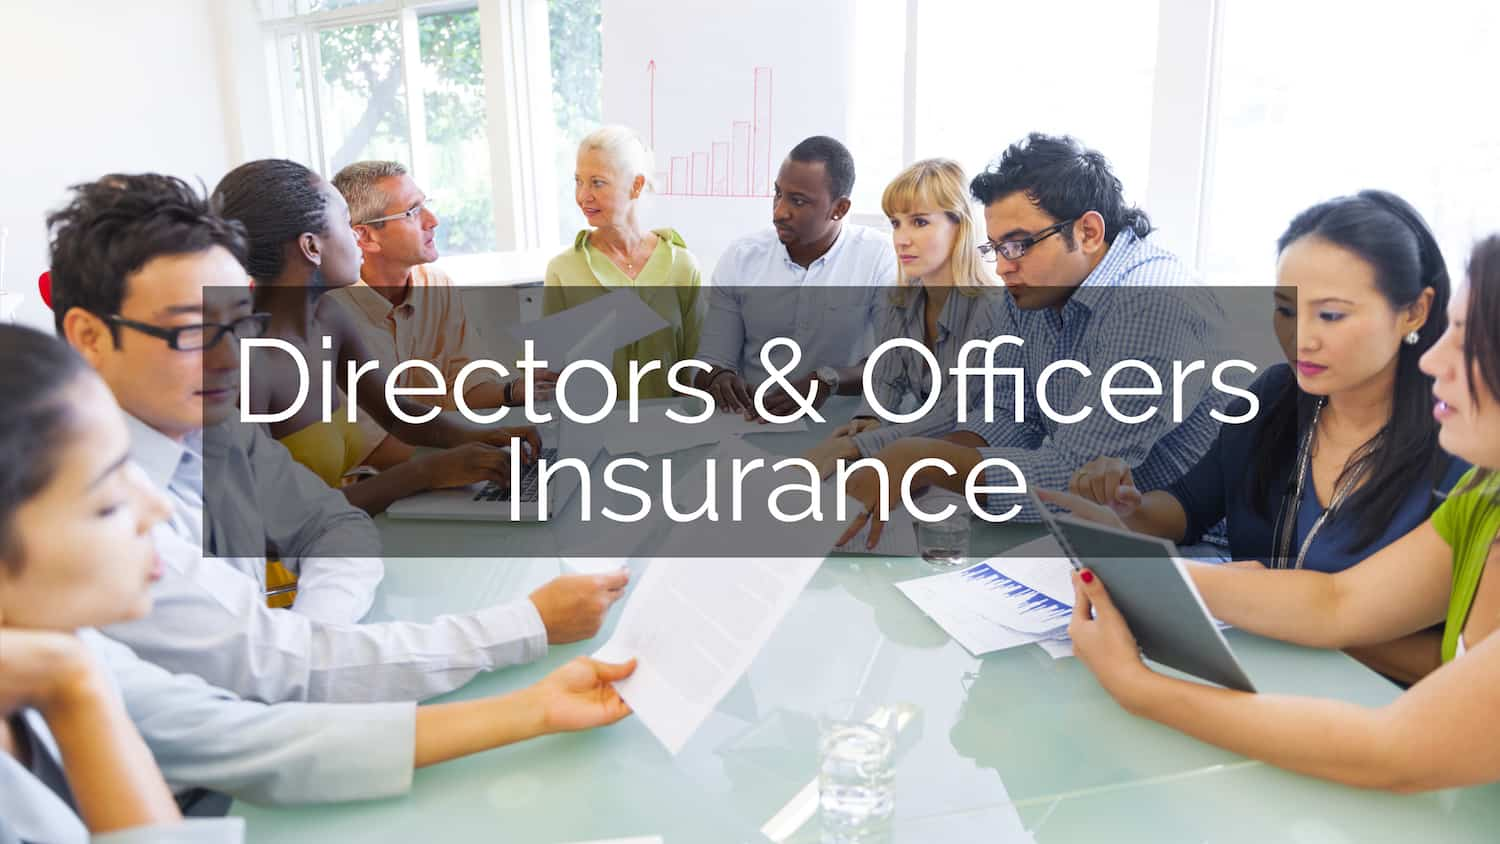 Director's and Officer's Insurance